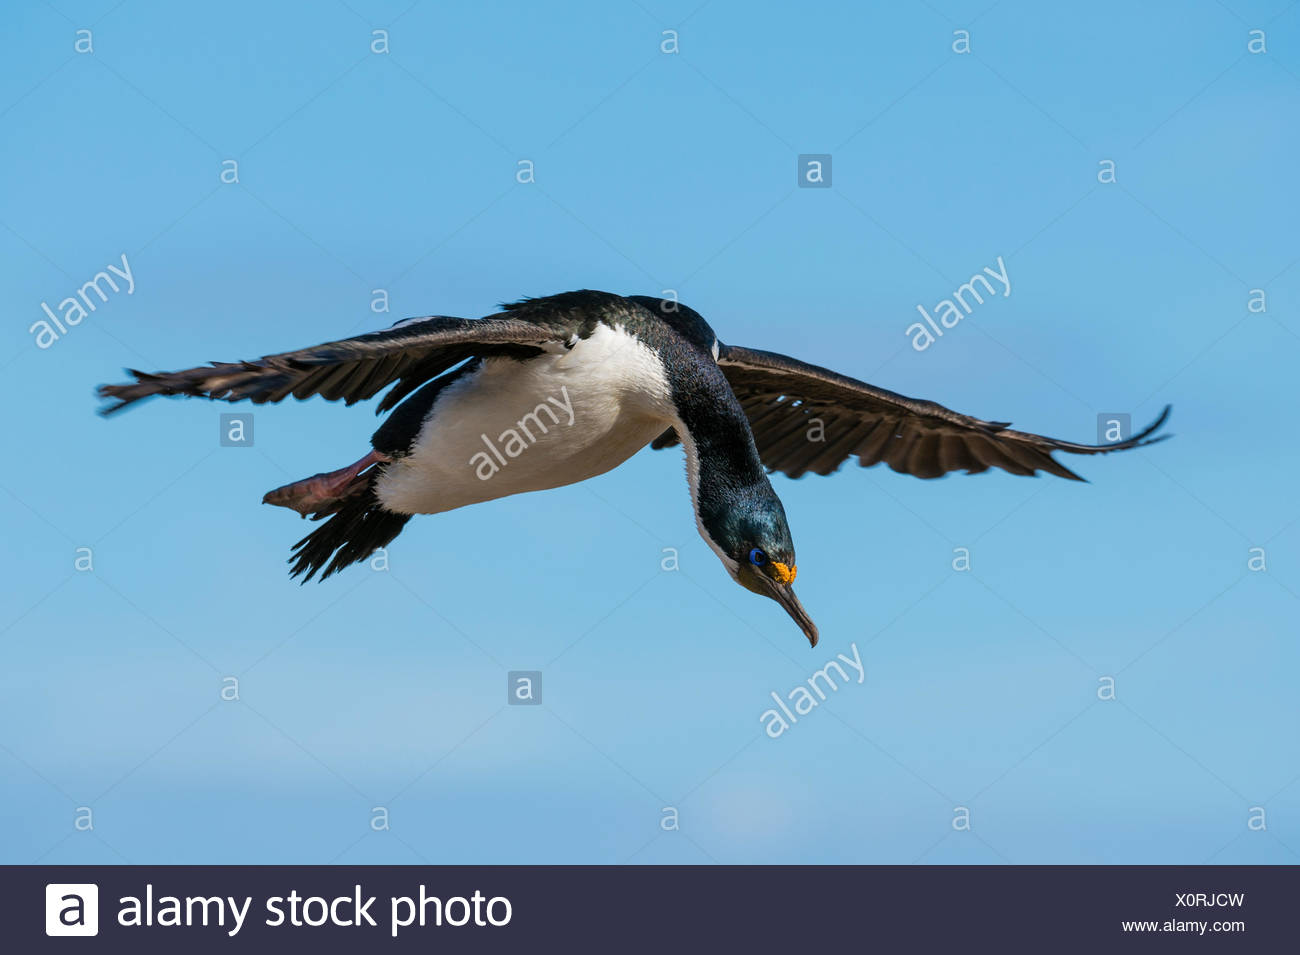 An imperial shag, Leucocarbo atriceps, in flight. - Stock Image